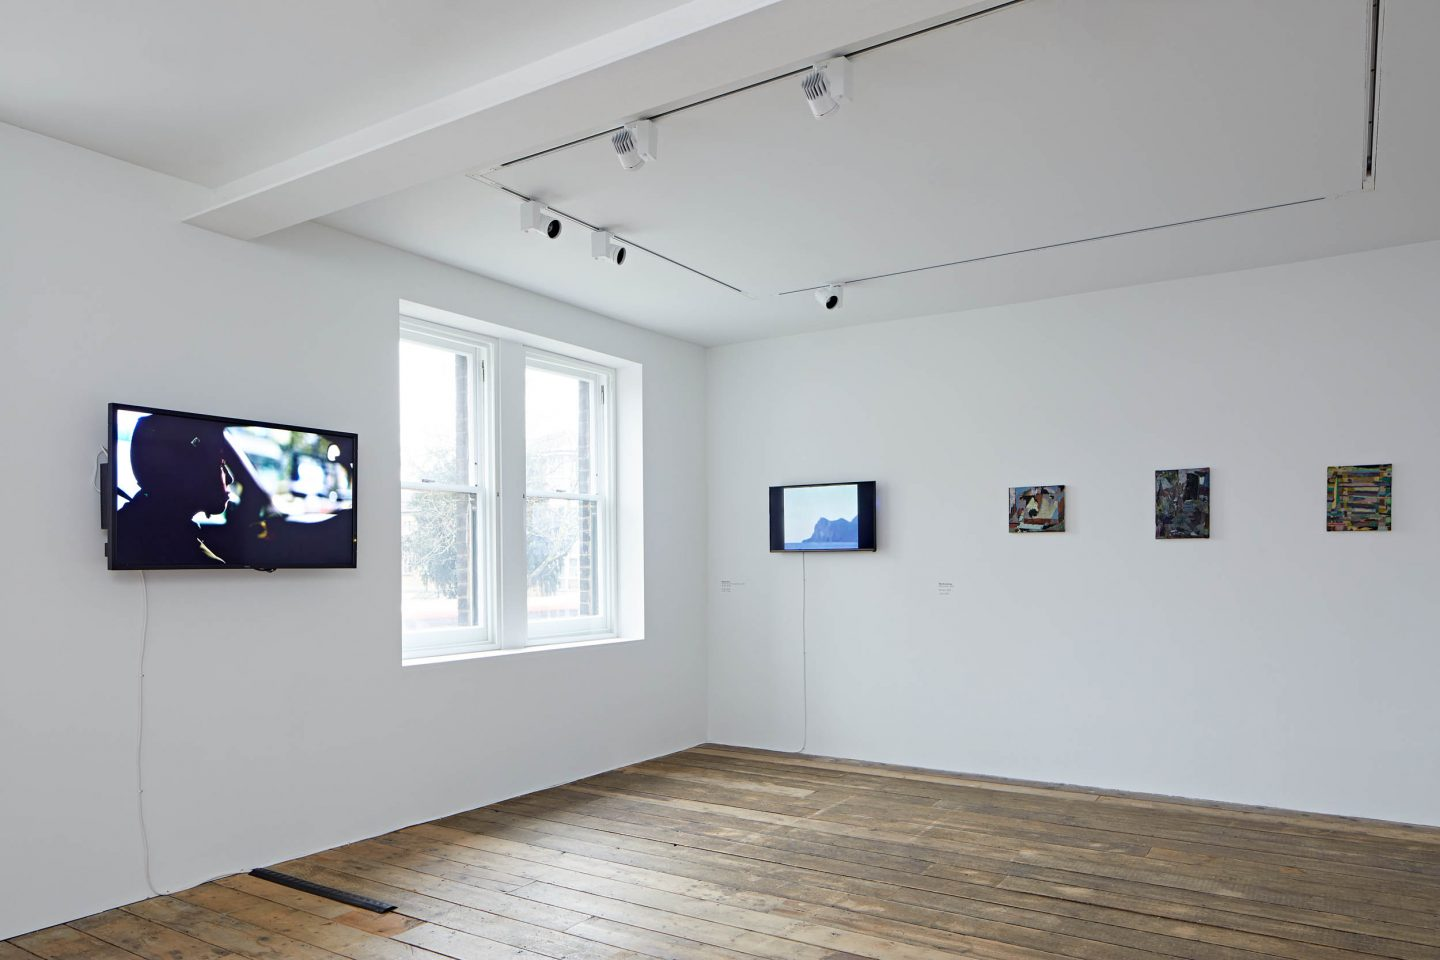 Bloomberg New Contemporaries 2020, installation view at the South London Gallery. Photo: Andy Stagg